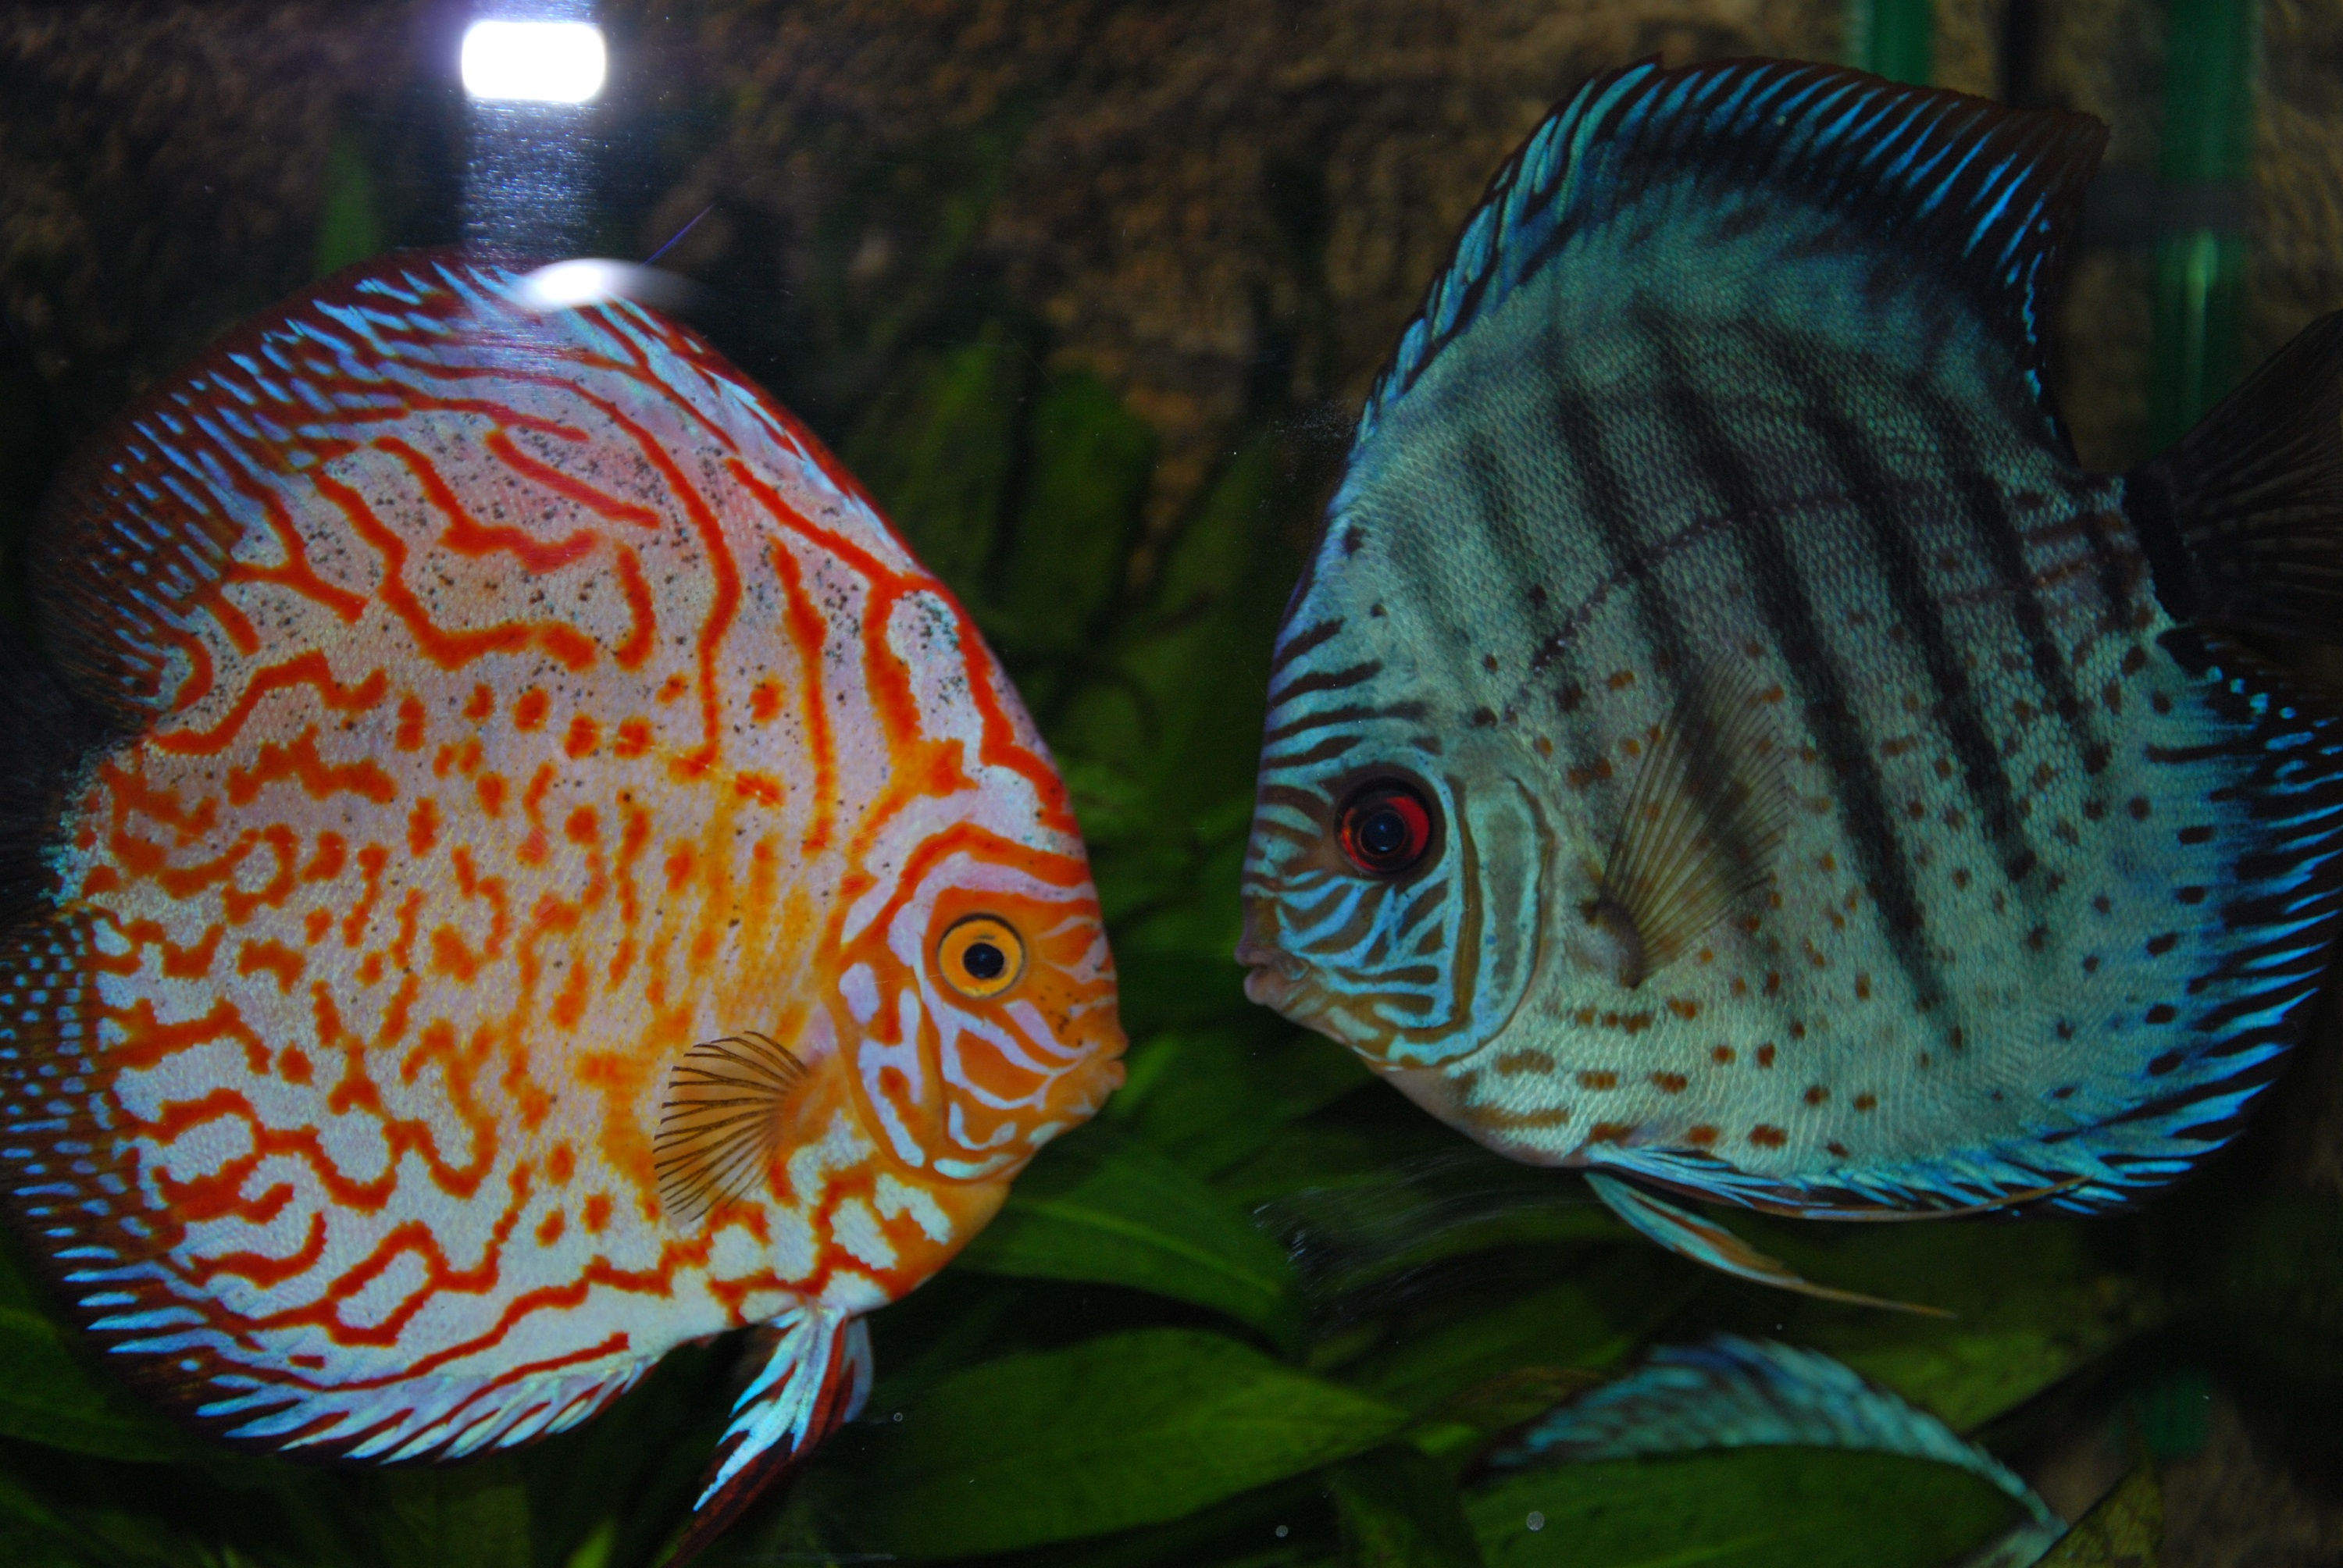 Two grace discus wallpaper